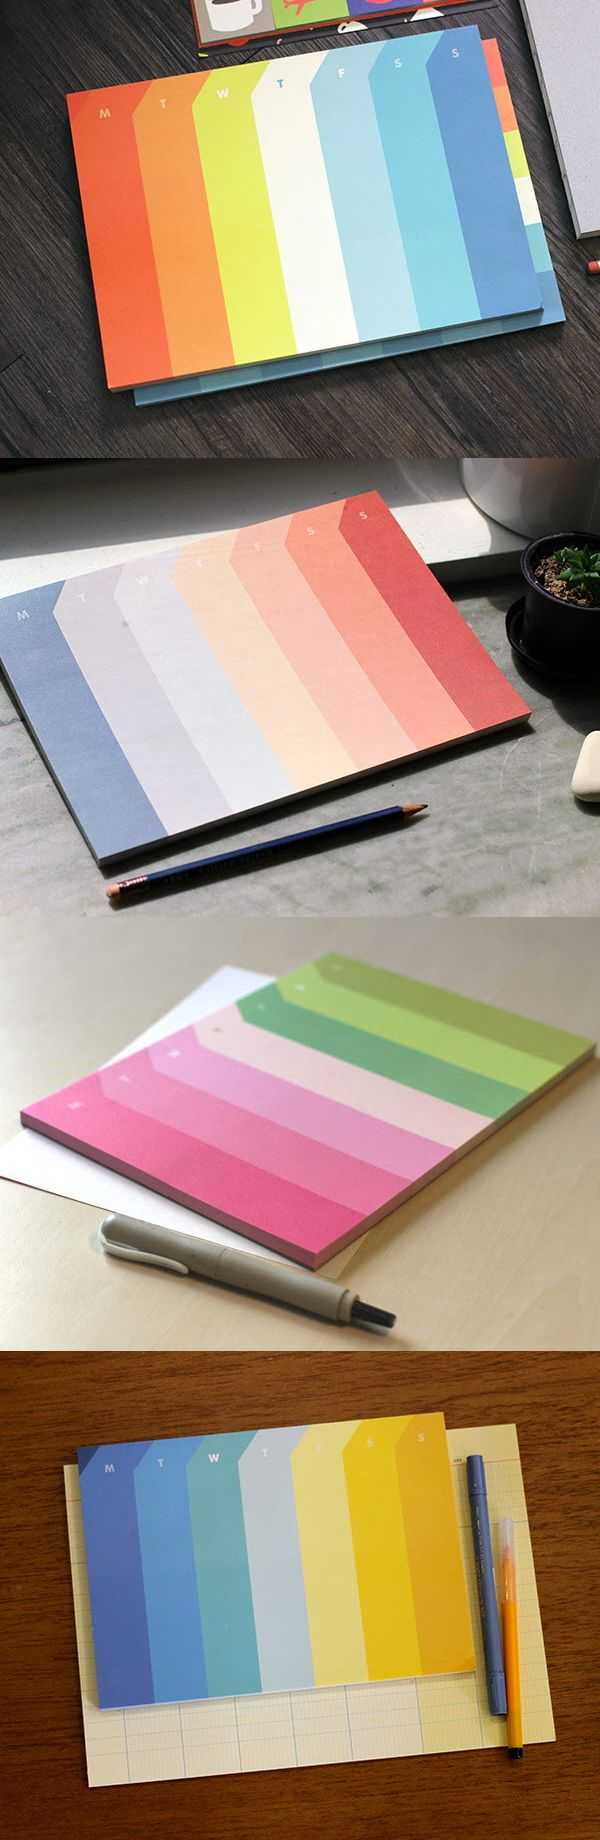 Plan with all the colors of the rainbow with the Palette Weekly Notepad! This beauty comes in 4 styles featuring unique color palettes inspired by movies. It can be used as a weekly planner or as a regular notepad. The beautiful colors and minimalistic design make this an absolute must-have for stationery lovers, so check it out!